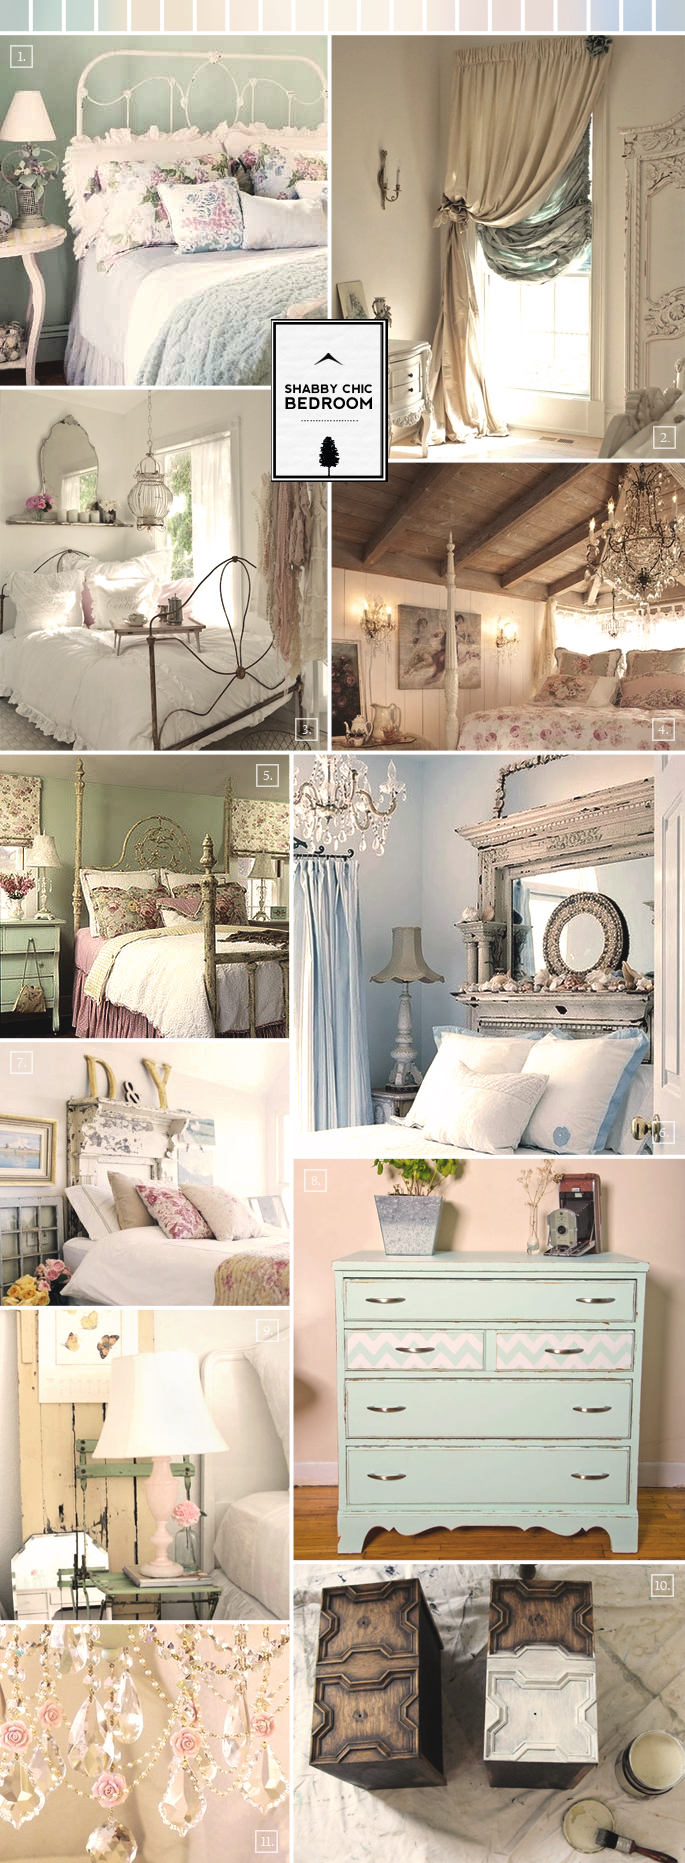 Shabby chic bedroom ideas and decor inspiration home Decorating your home shabby chic cottage style